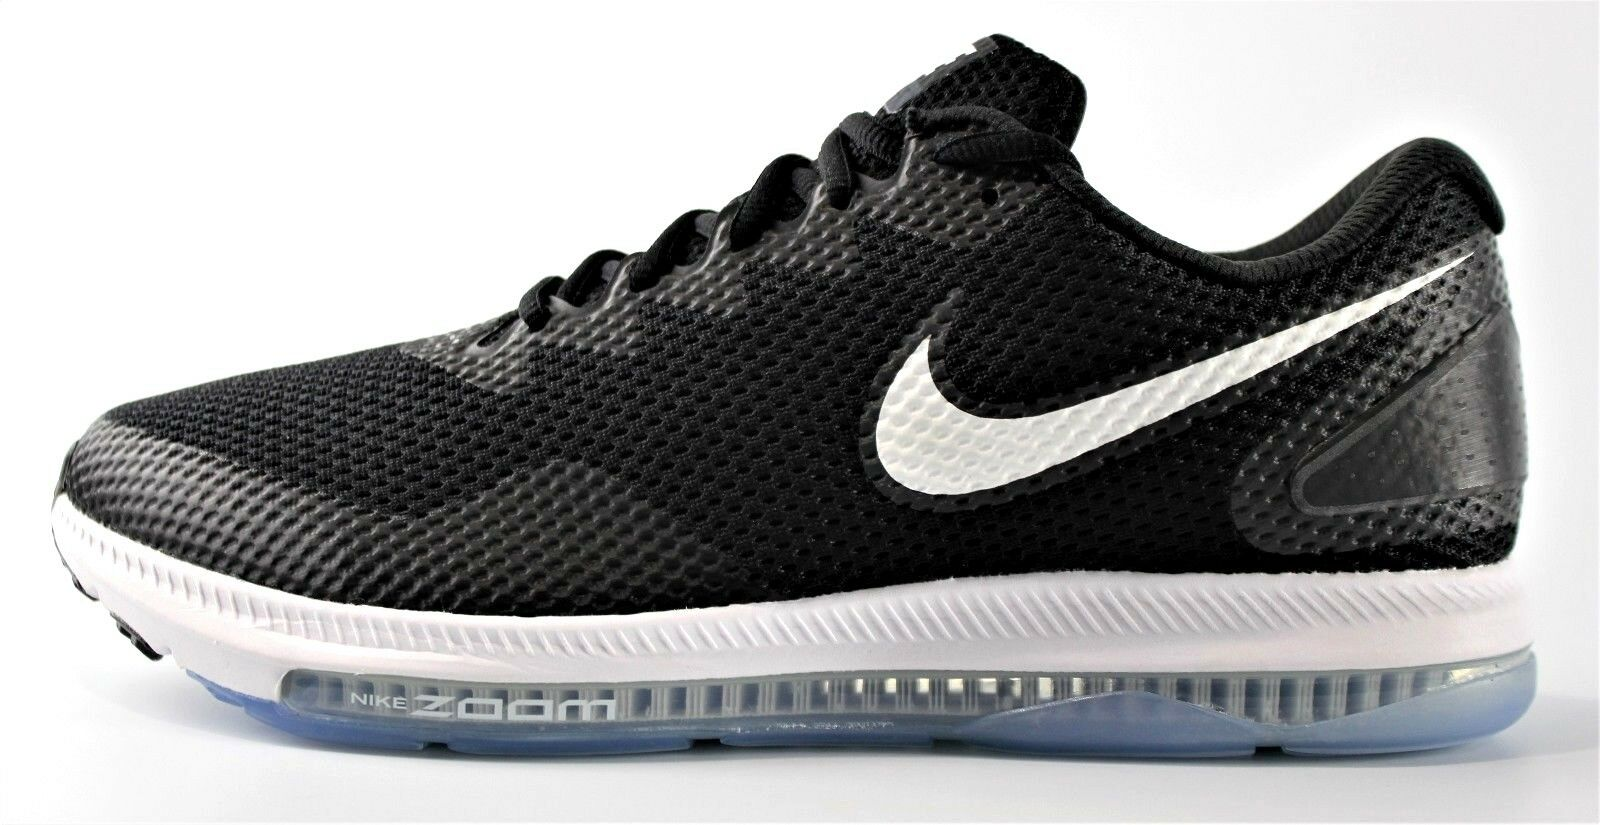 NIKE ZOOM ALL OUT LOW 2 RUNNING SHOES AJ0035 003 NEW MENS BLACK WHITE ANTHRACITE